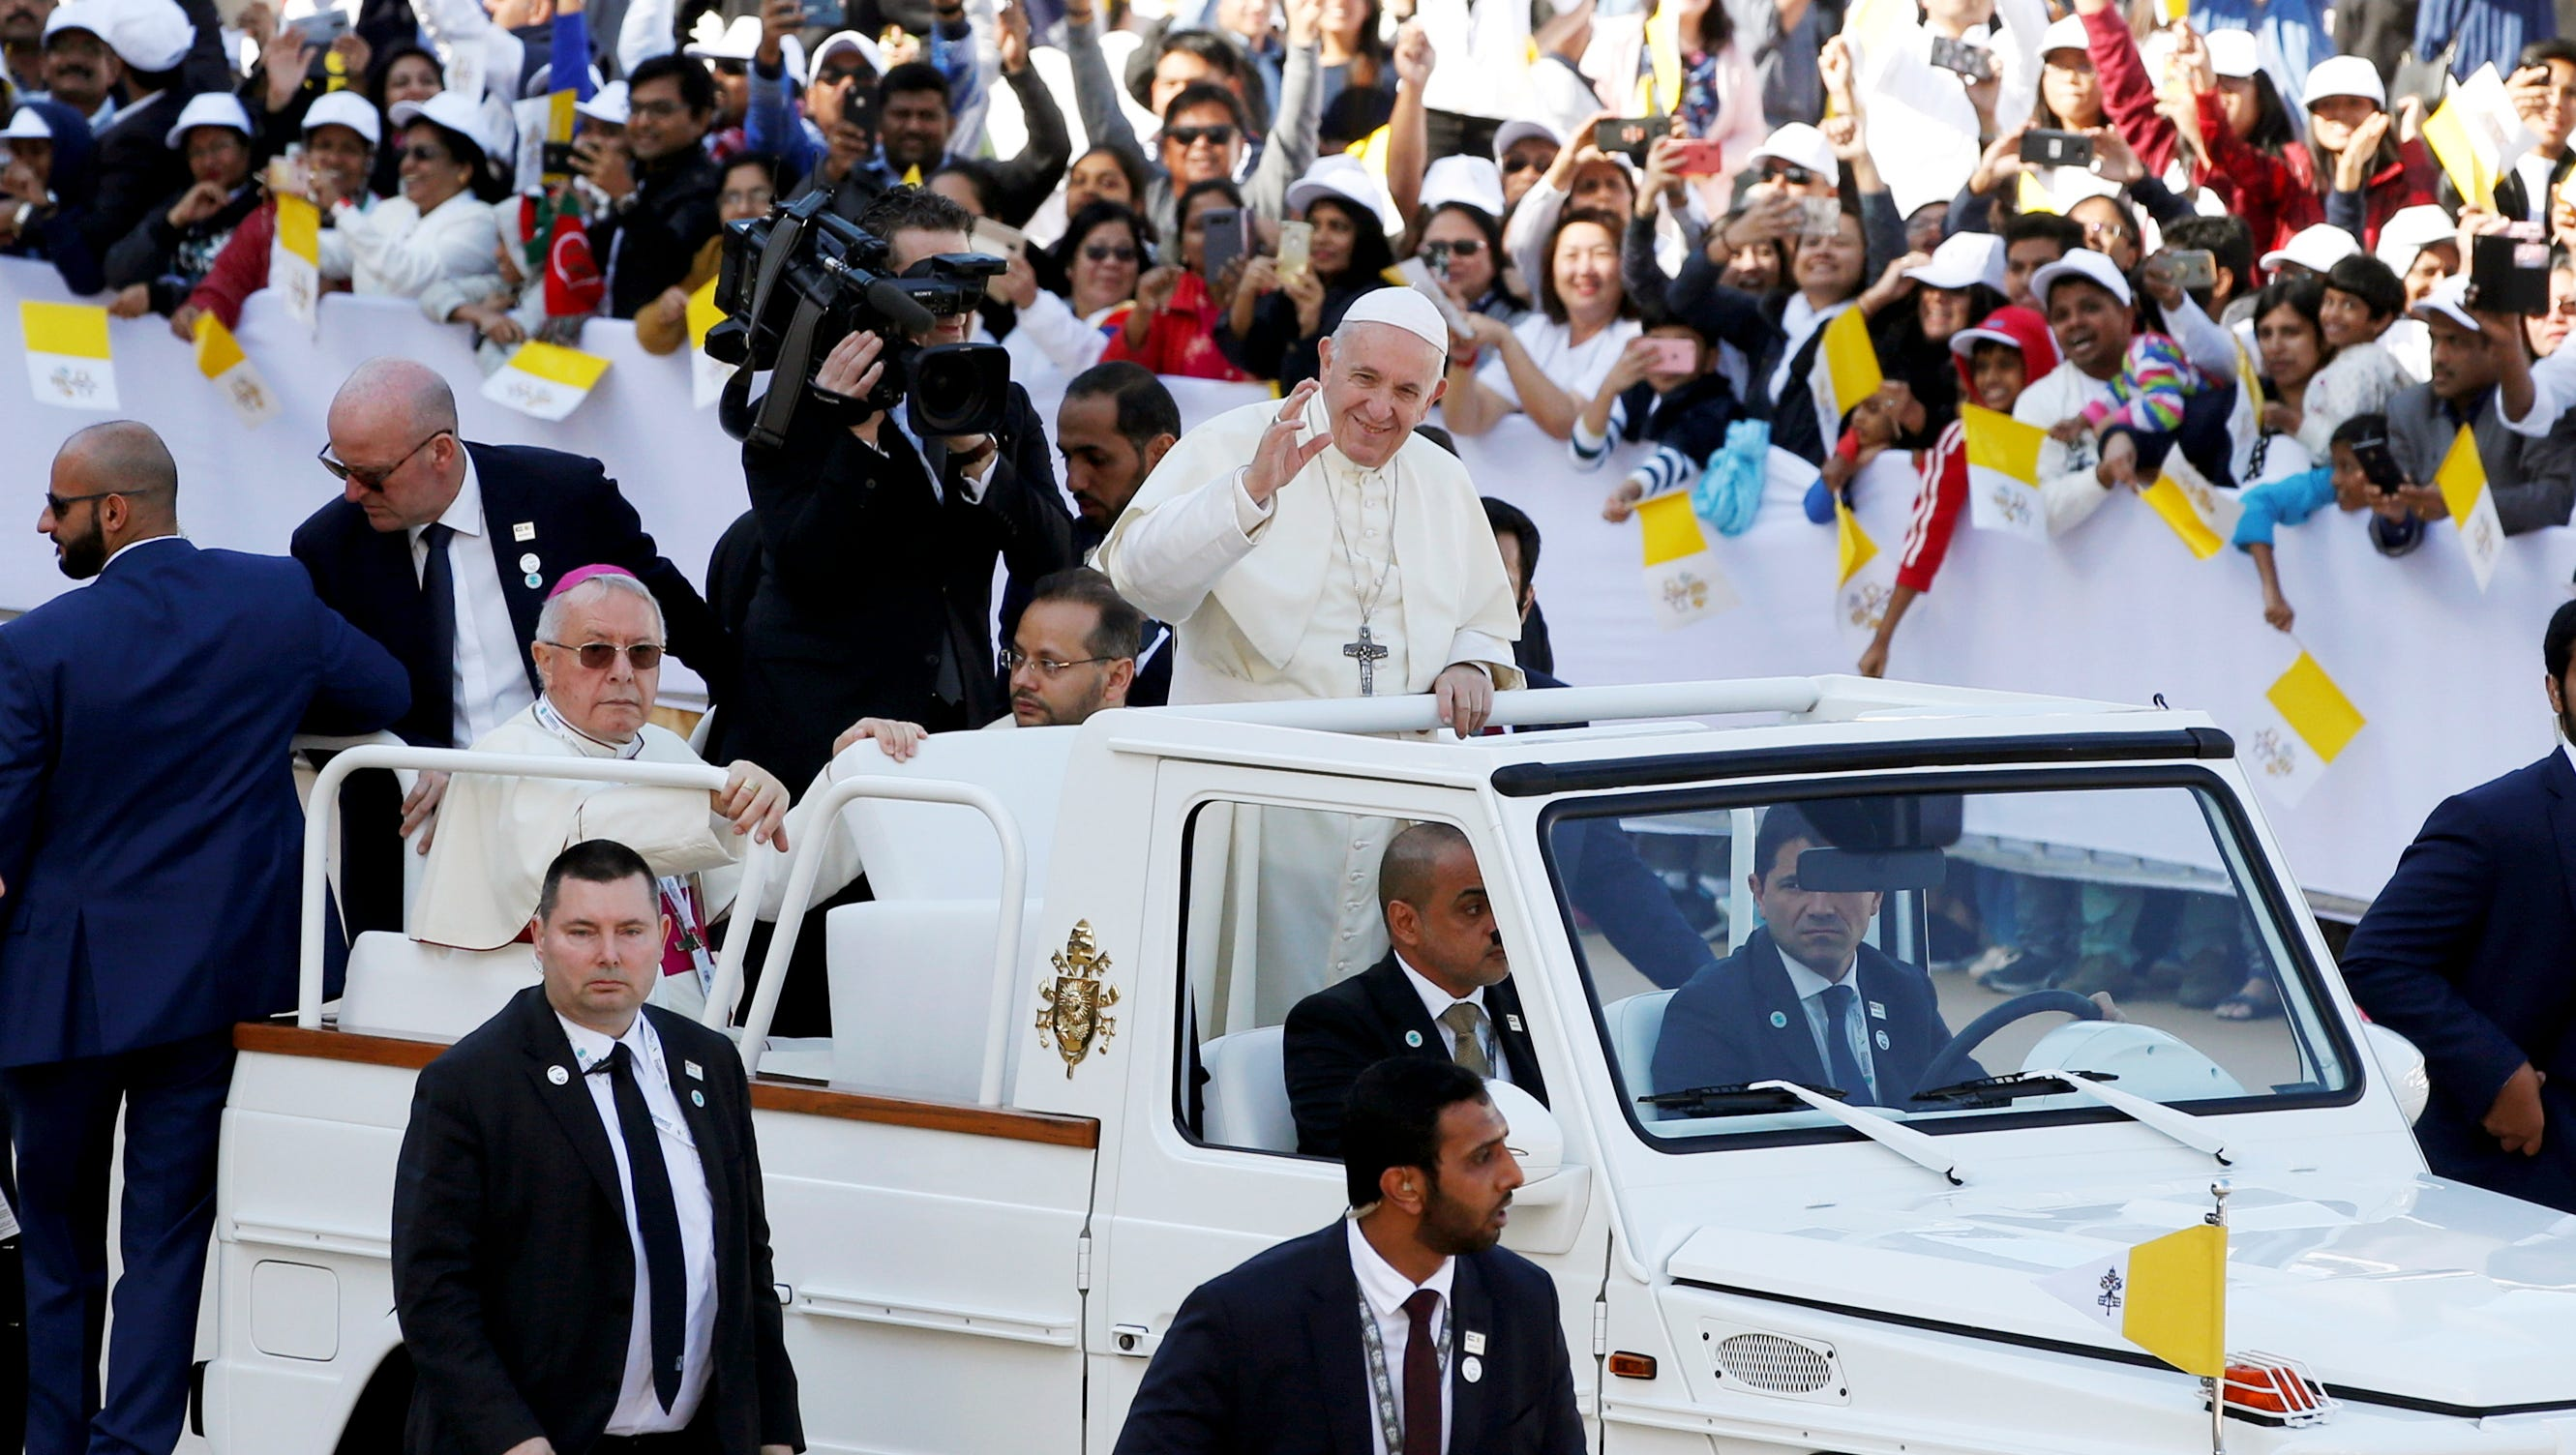 Pope Francis (center) arrives to lead a papal mass at Zayed Sports City in Abu Dhabi, United Arab Emirates.